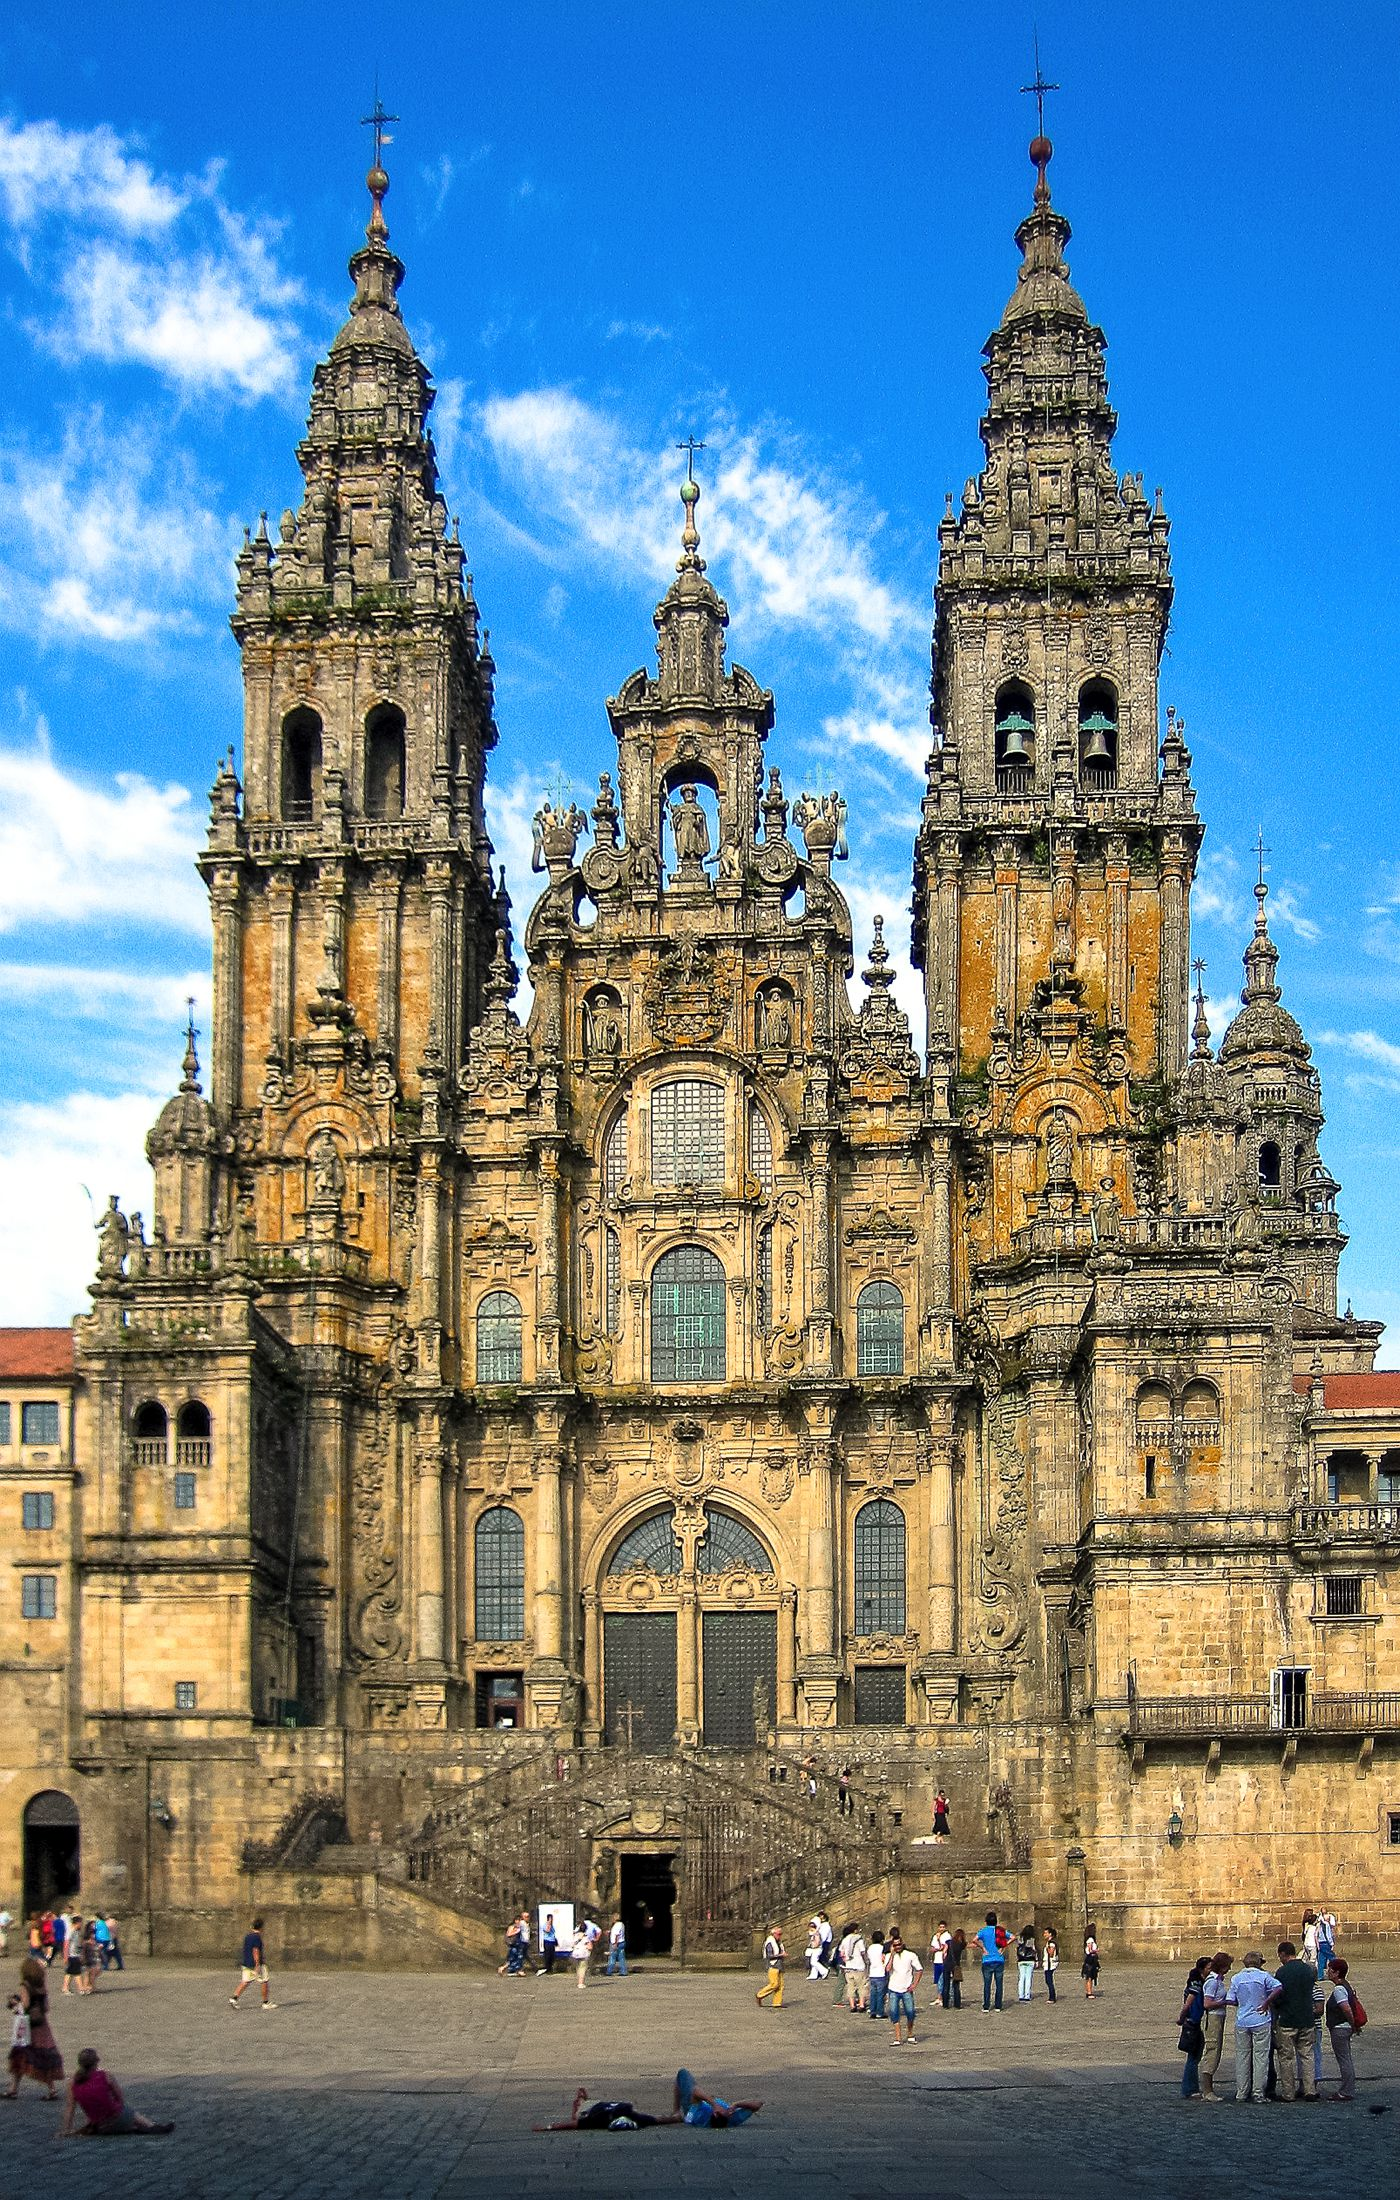 santiago de compostela jewish personals Posts about cathedral of santiago de compostela written of the old testament and jewish people waiting with frescoes dating from the reign of.